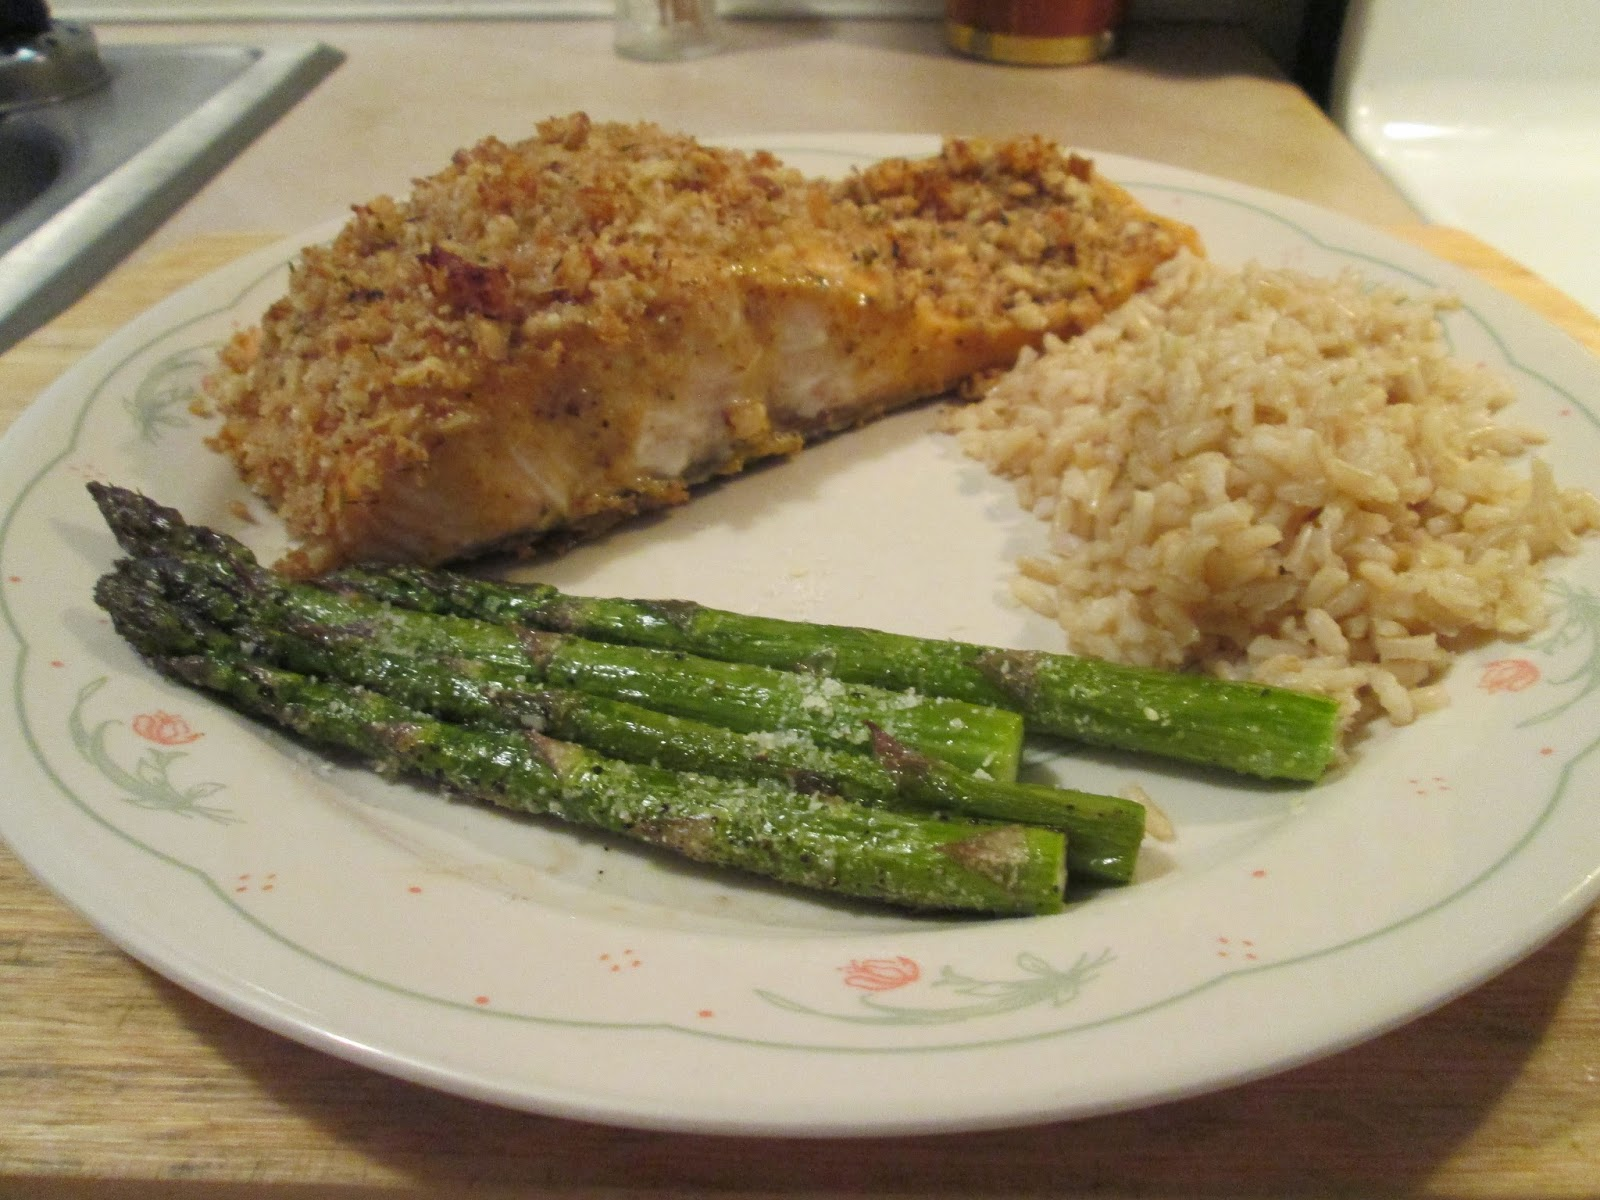 walnut crusted salmon w/ brown rice and asparagus